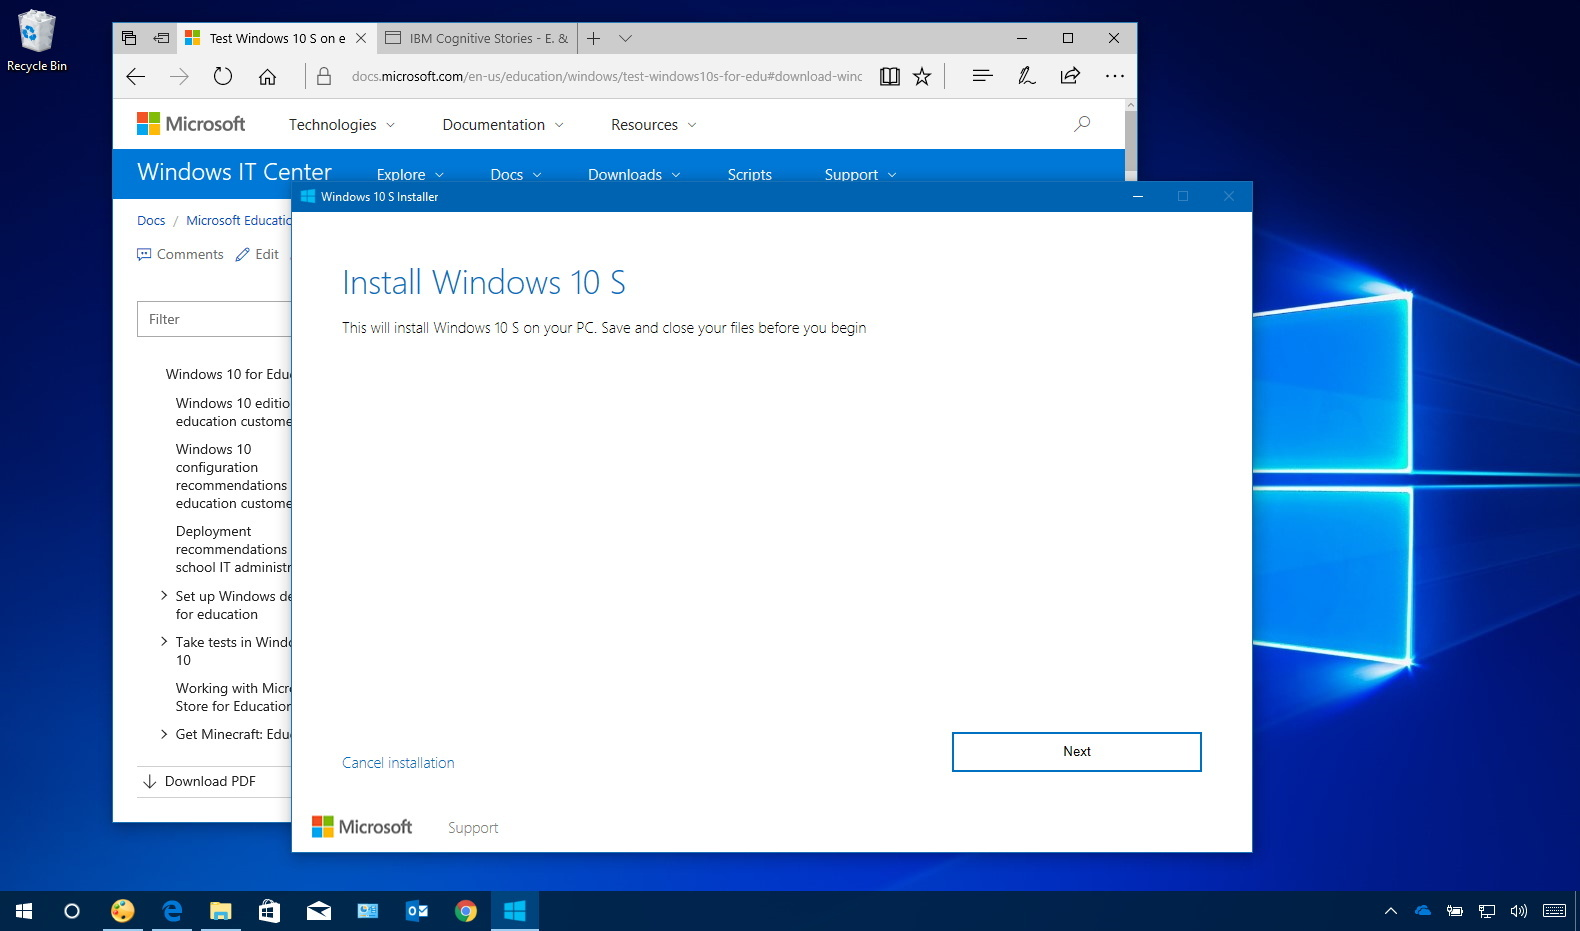 Download Windows 10 S installer